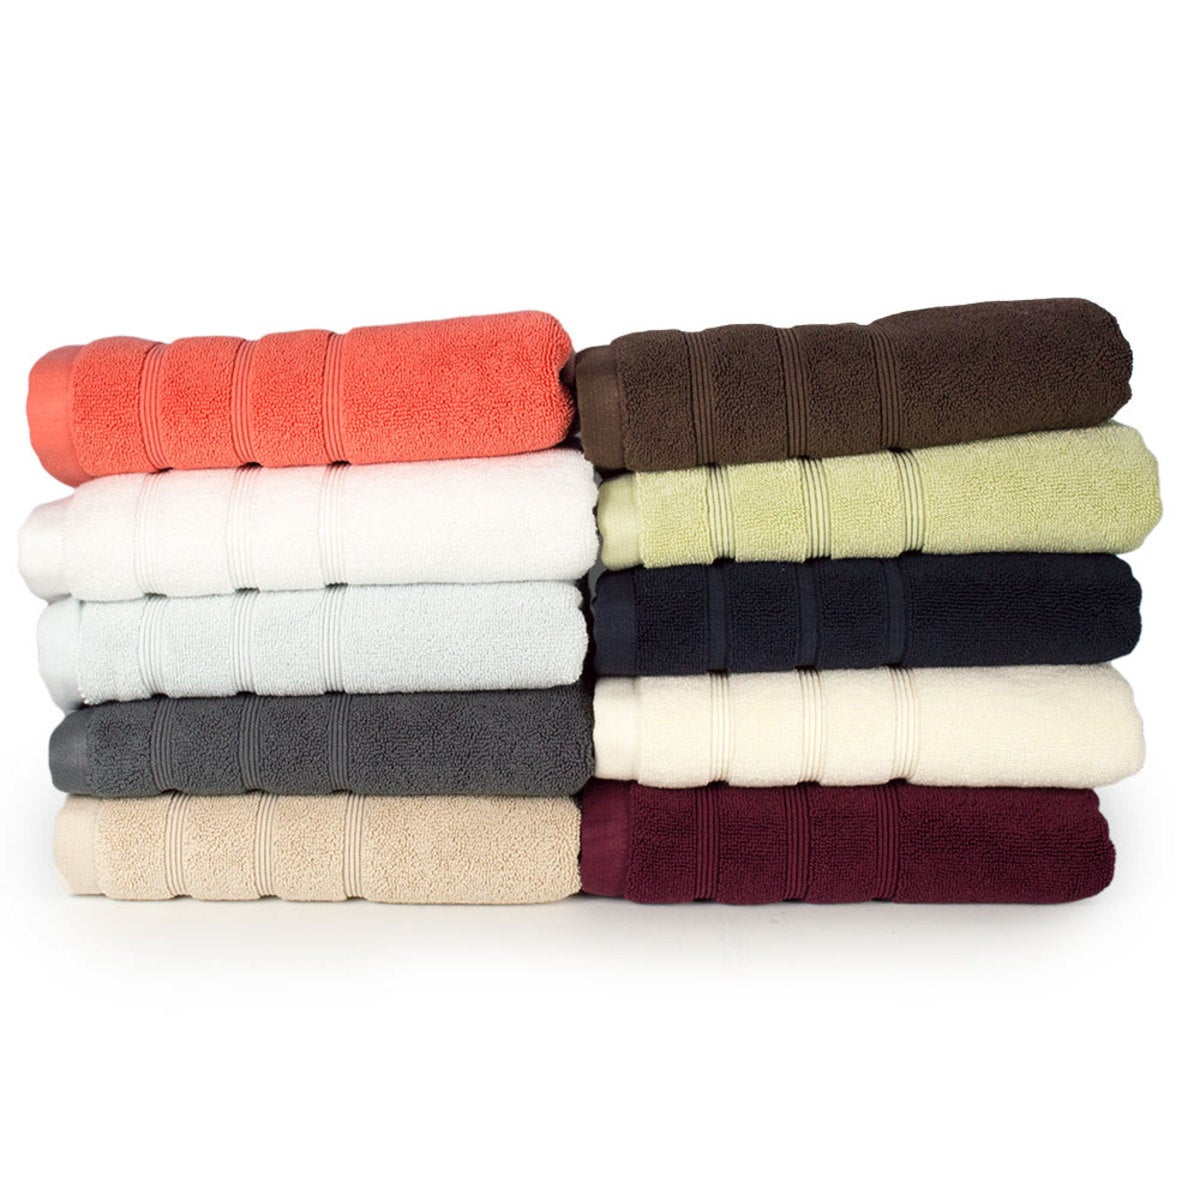 Organic Cotton 700 Gram Bath Towel Collection